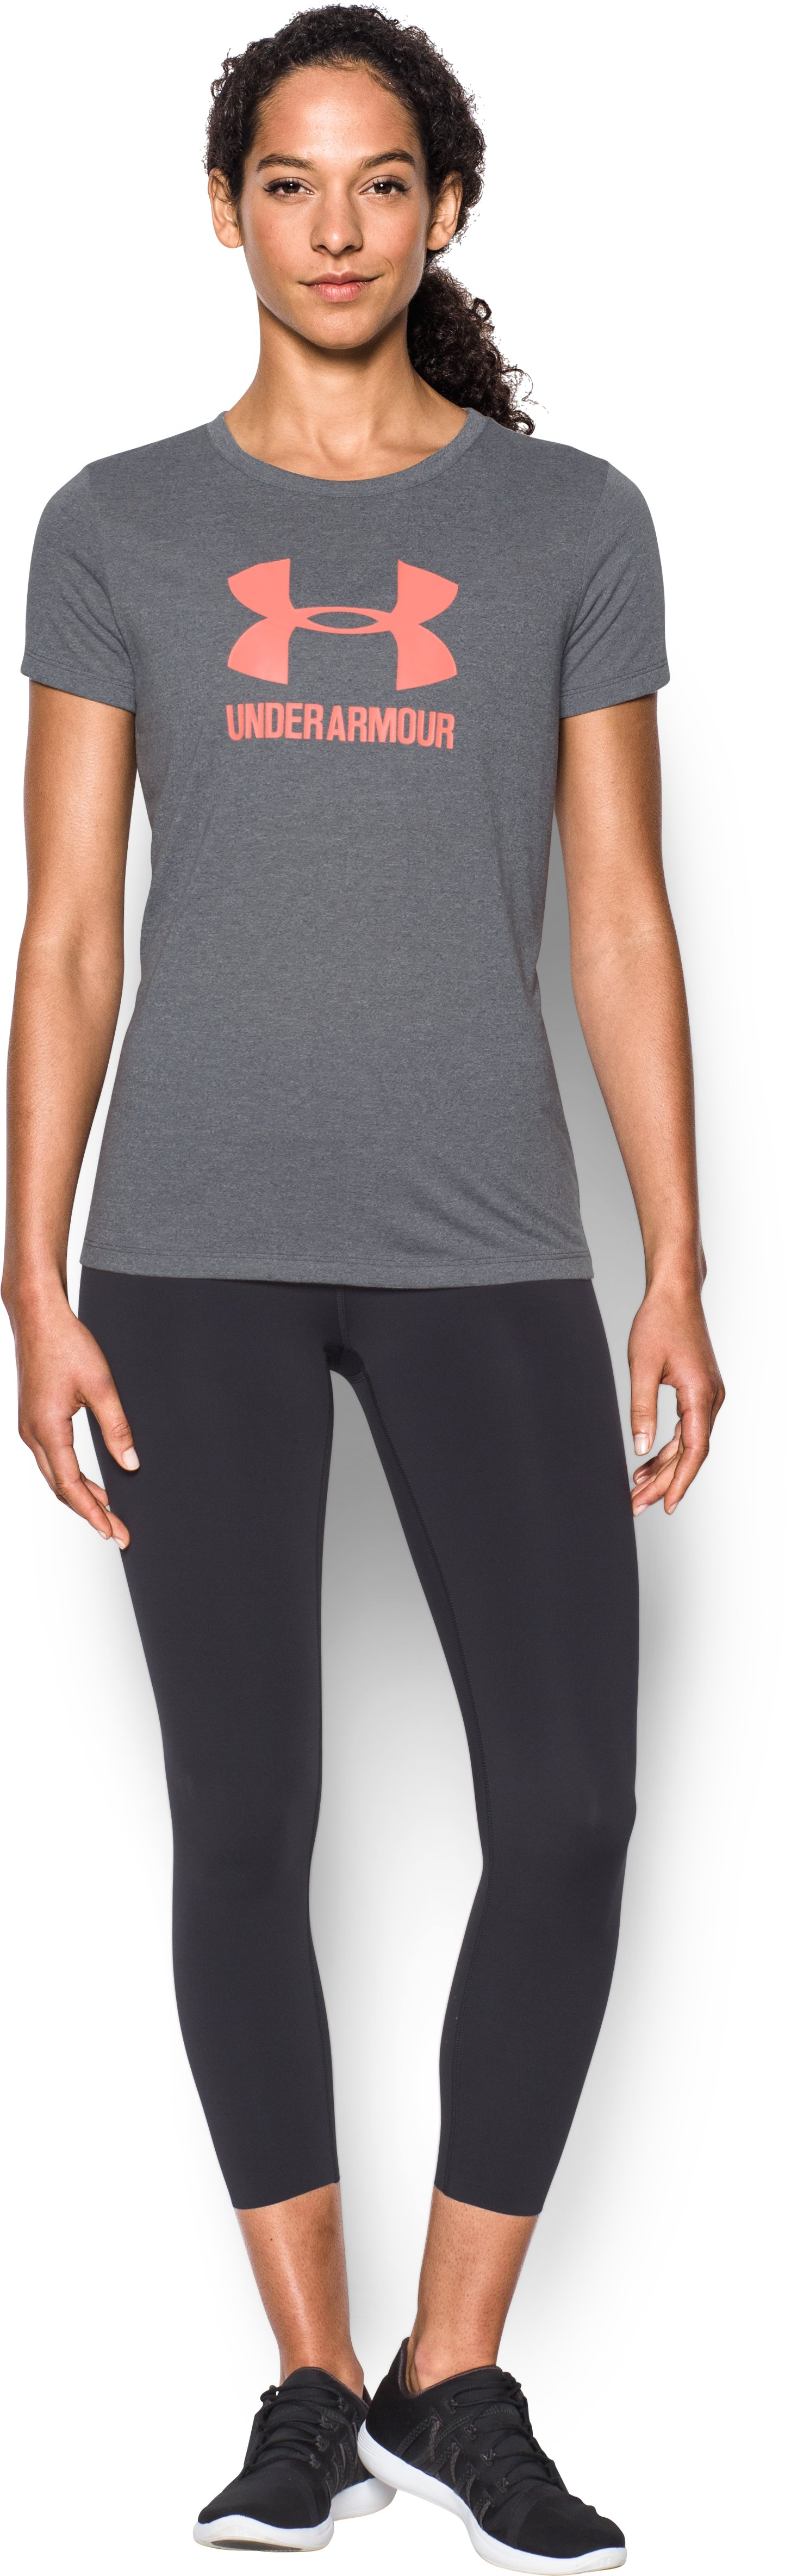 Women's UA Threadborne Sportstyle Crew - Twist, RHINO GRAY